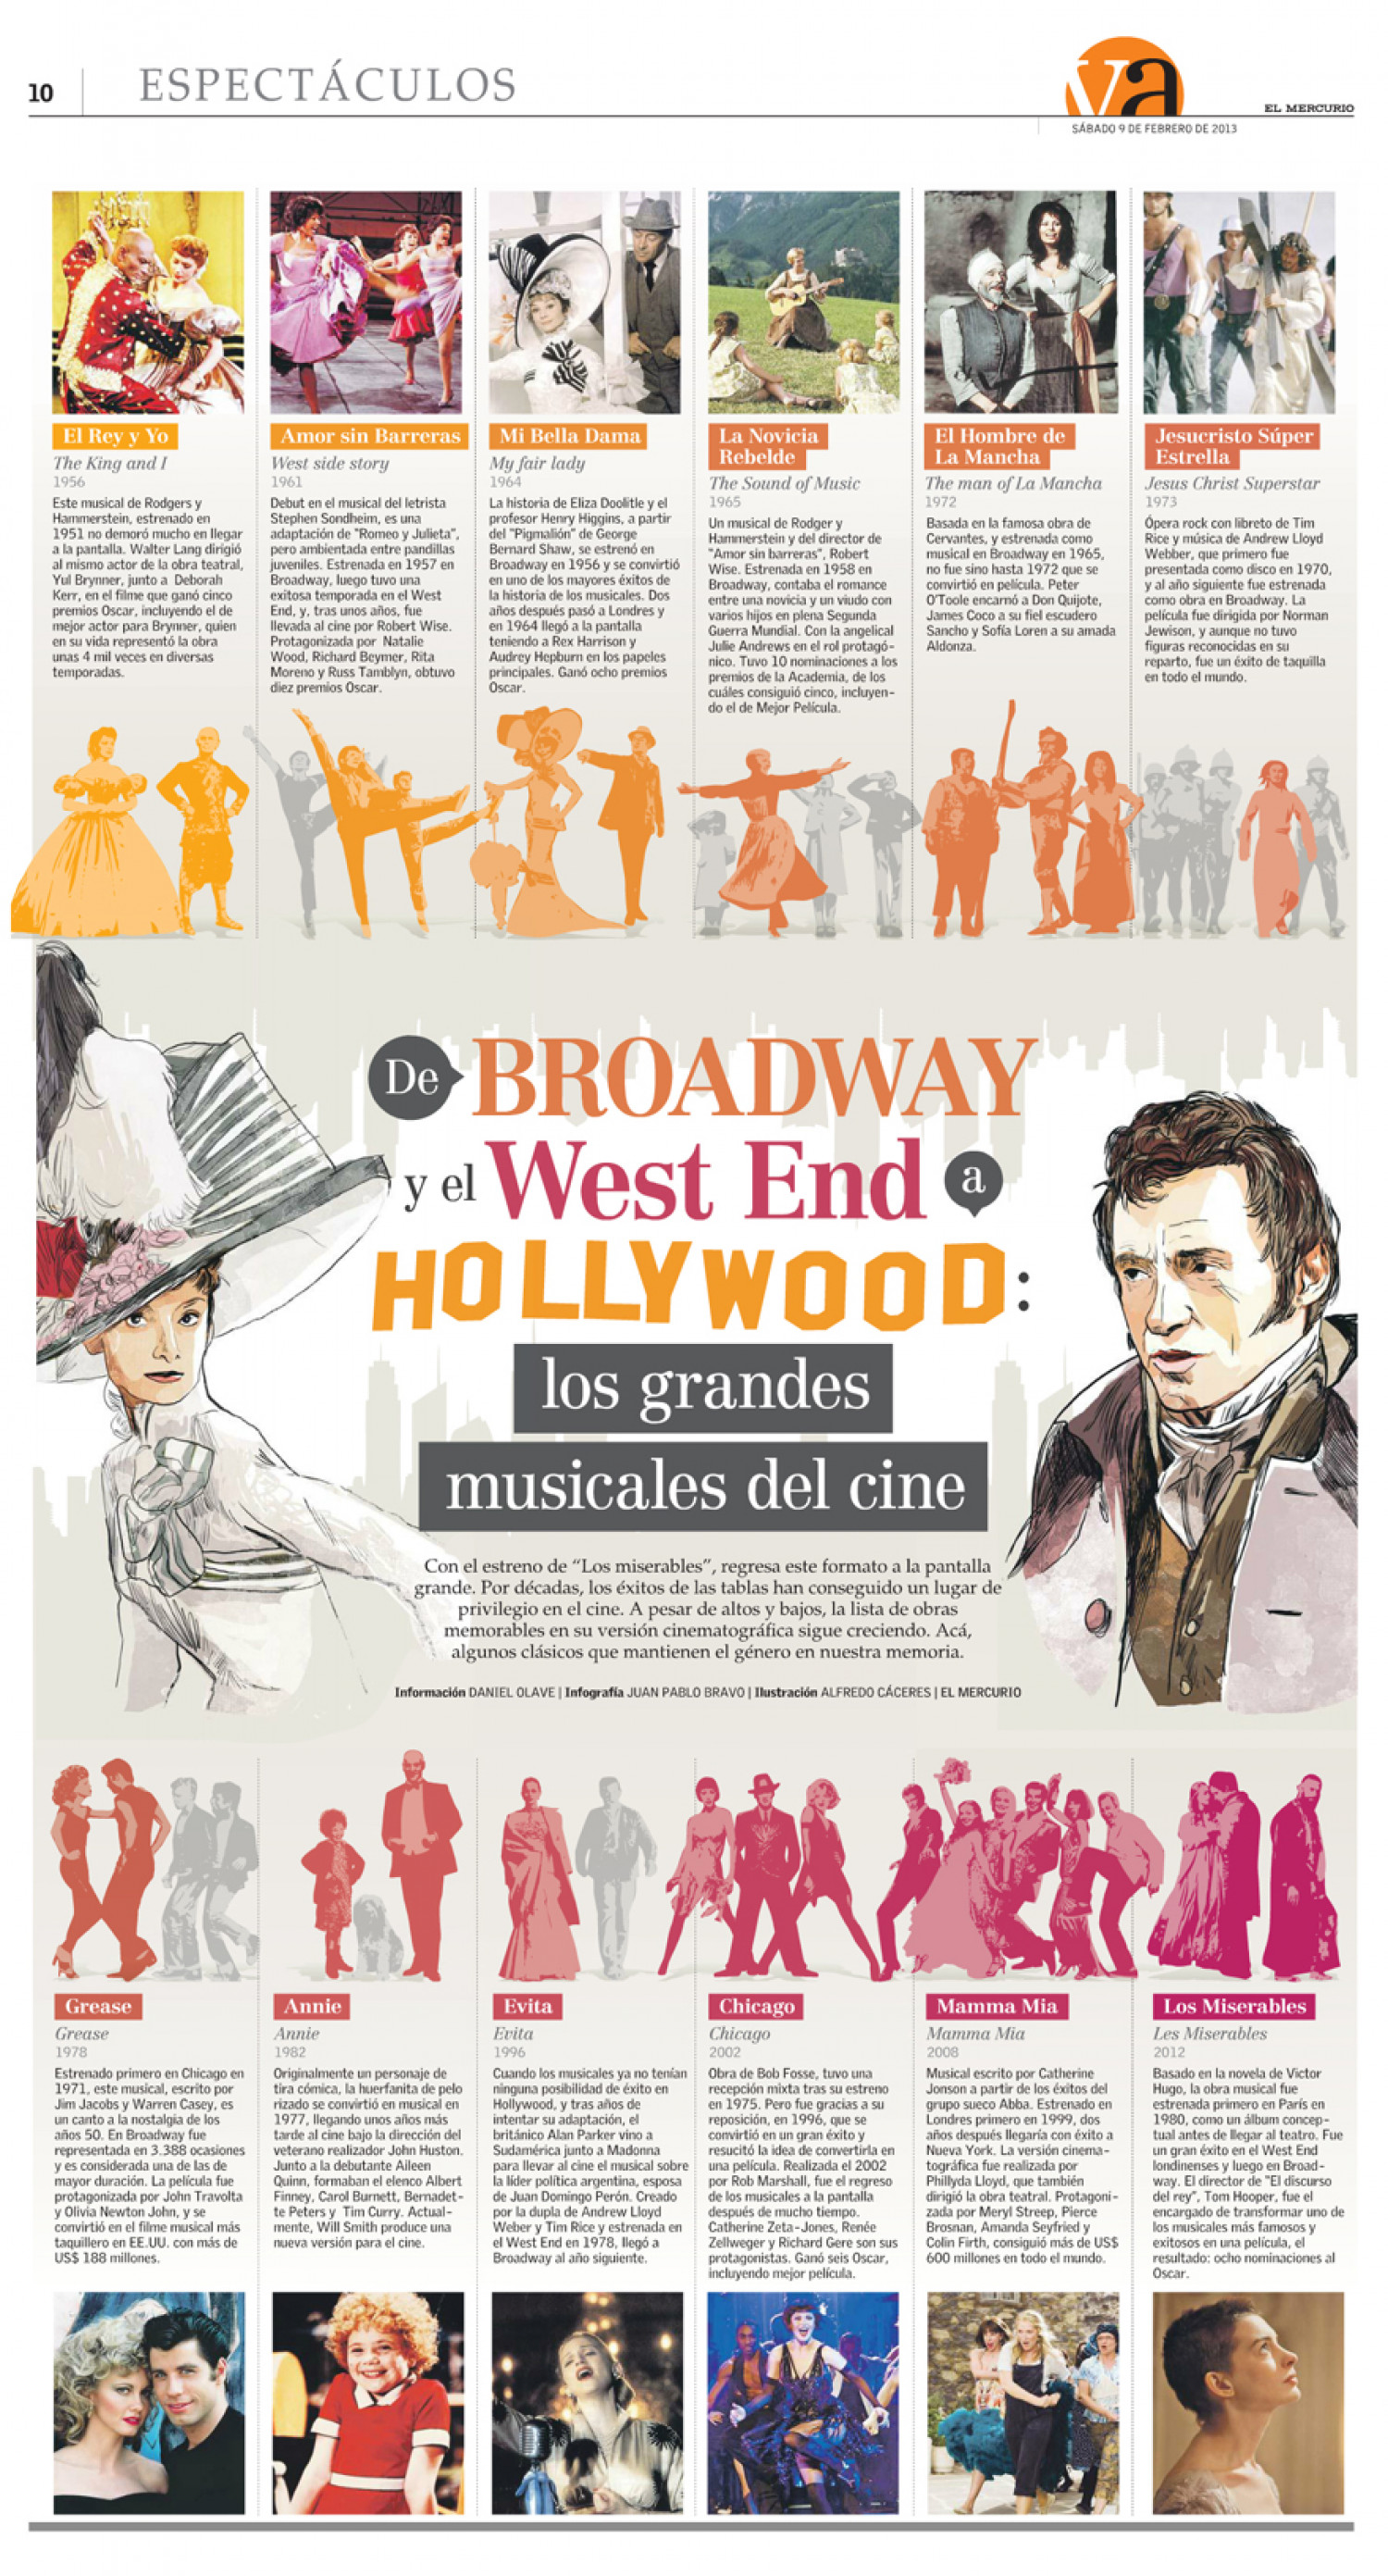 De Broadway a Hollywood, (Musicales) | From Broadway and the West End to Hollywood (Musicals) Infographic